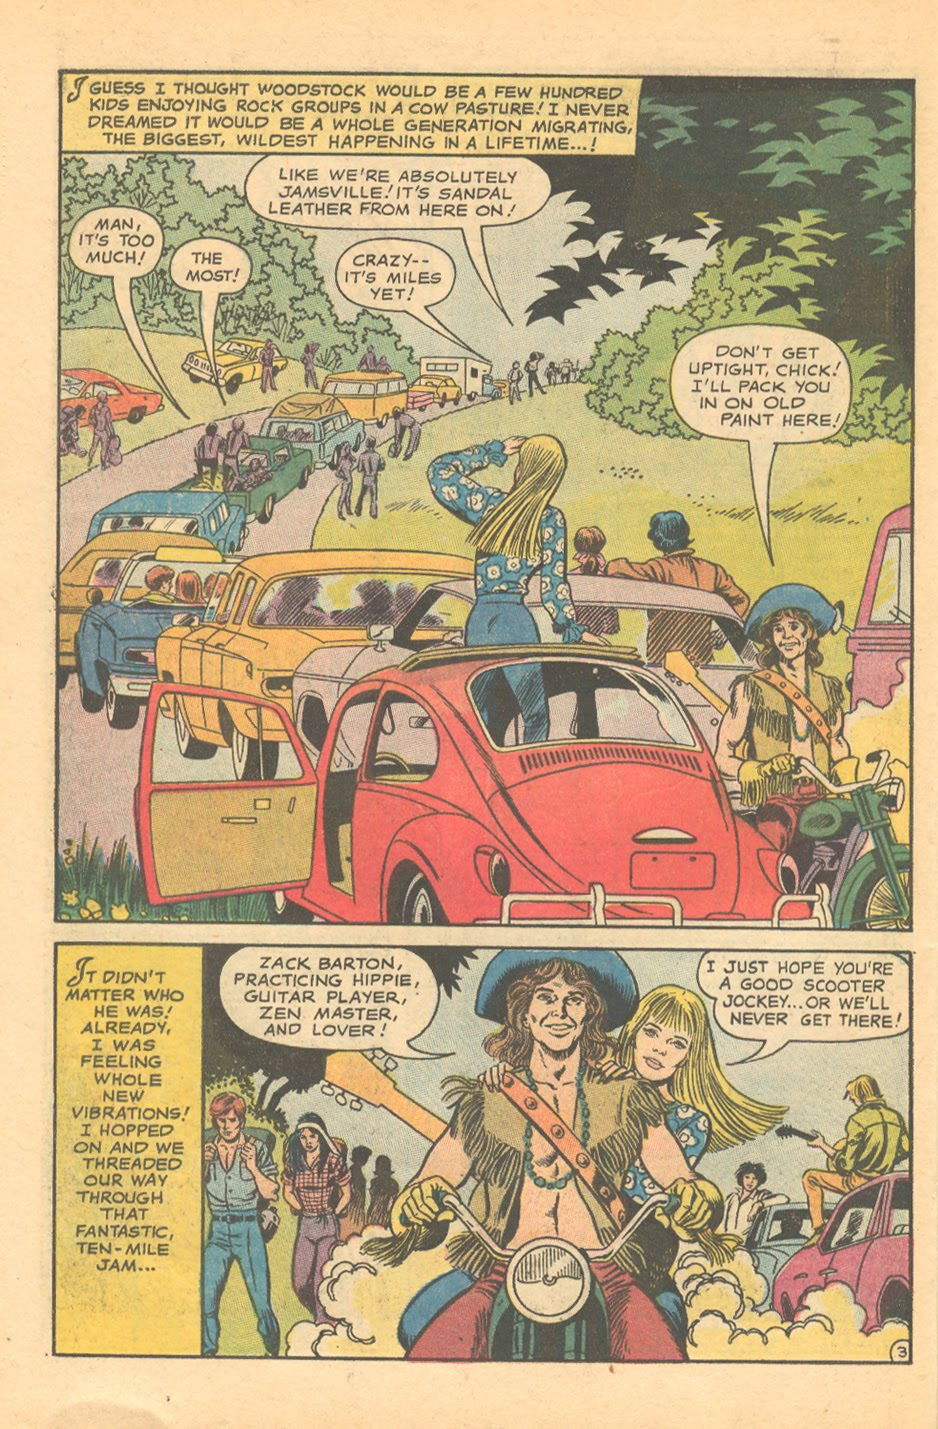 """""""I Found My Love at the Woodstock Festival!"""" from  Falling in Love #118 (October 1970)"""